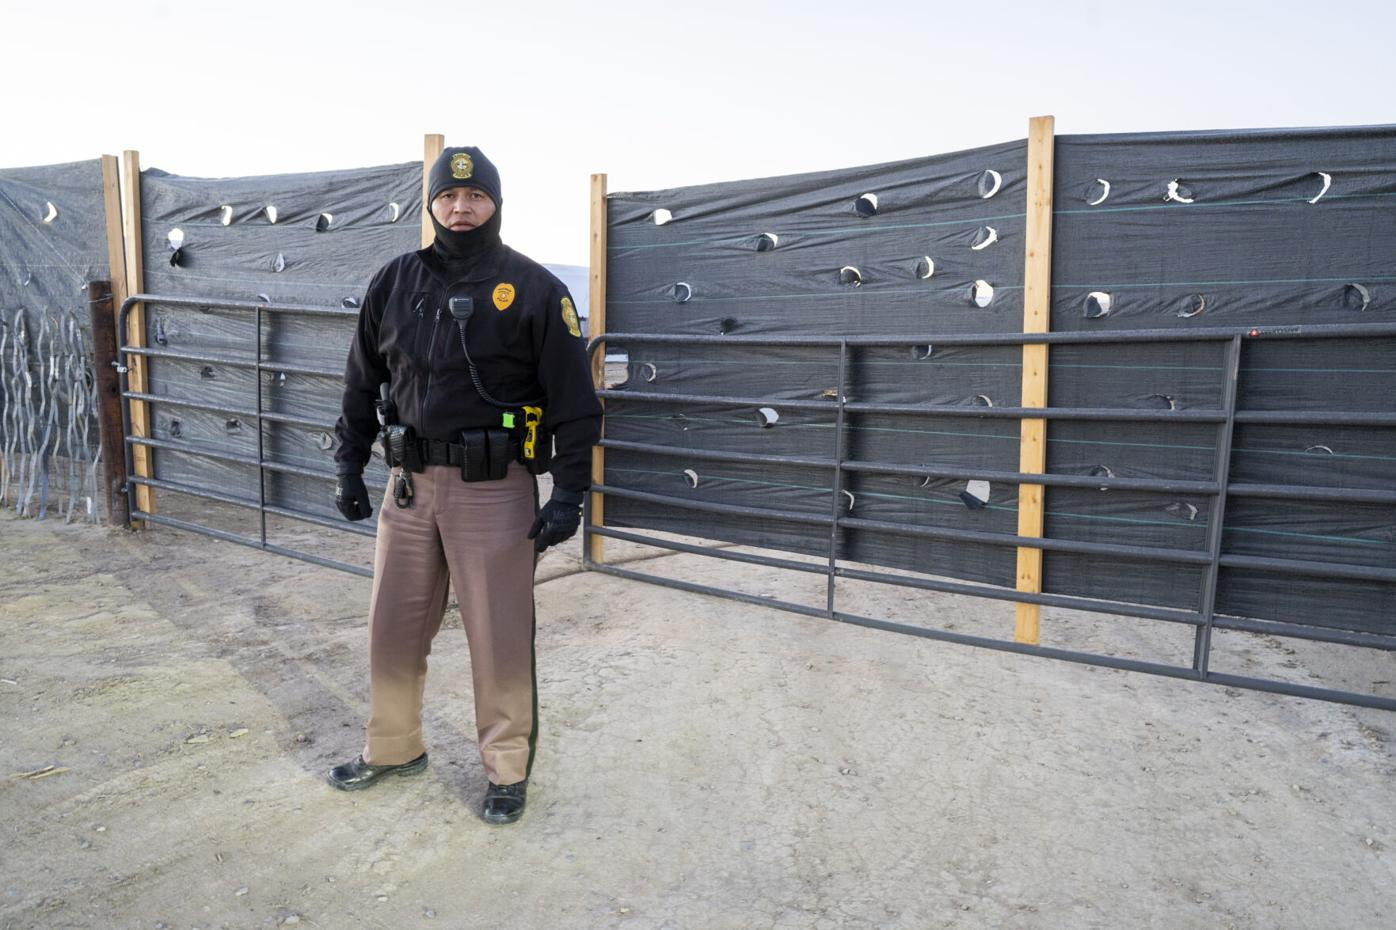 Police raid near Shiprock all but ends an illicit cannabis-growing operation